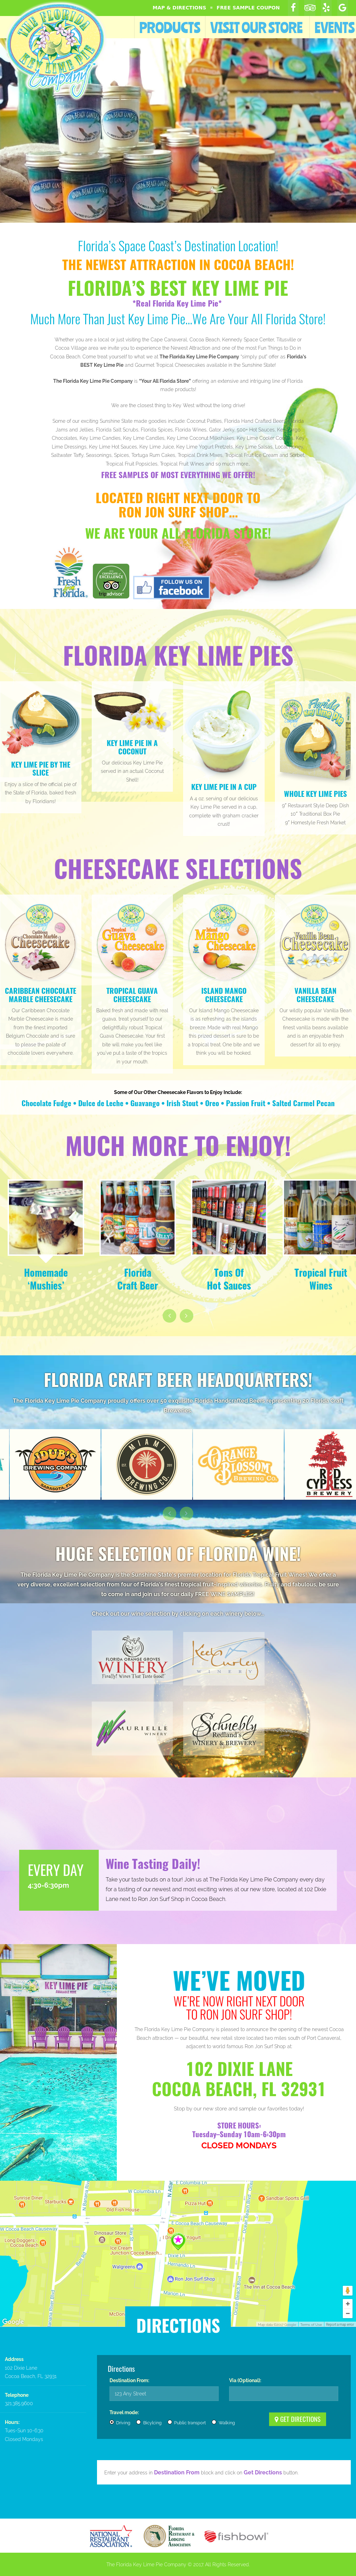 Floridakeylimepiecompany Competitors, Revenue and Employees